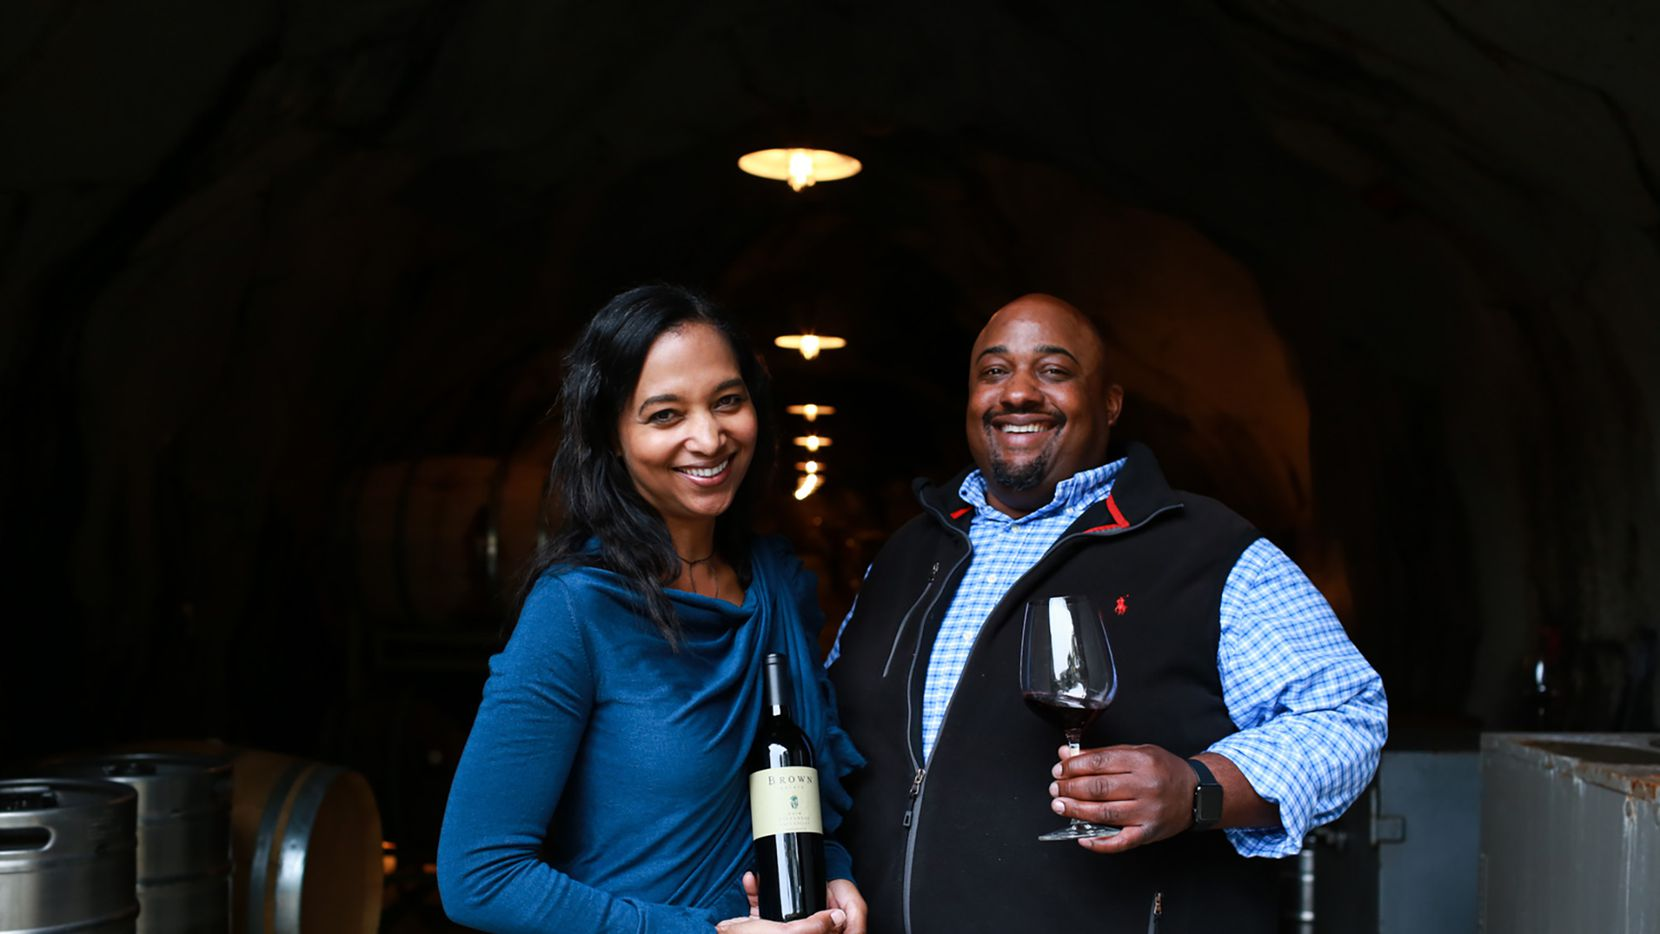 Coral and David Brown of Brown Estate wines in Napa Valley